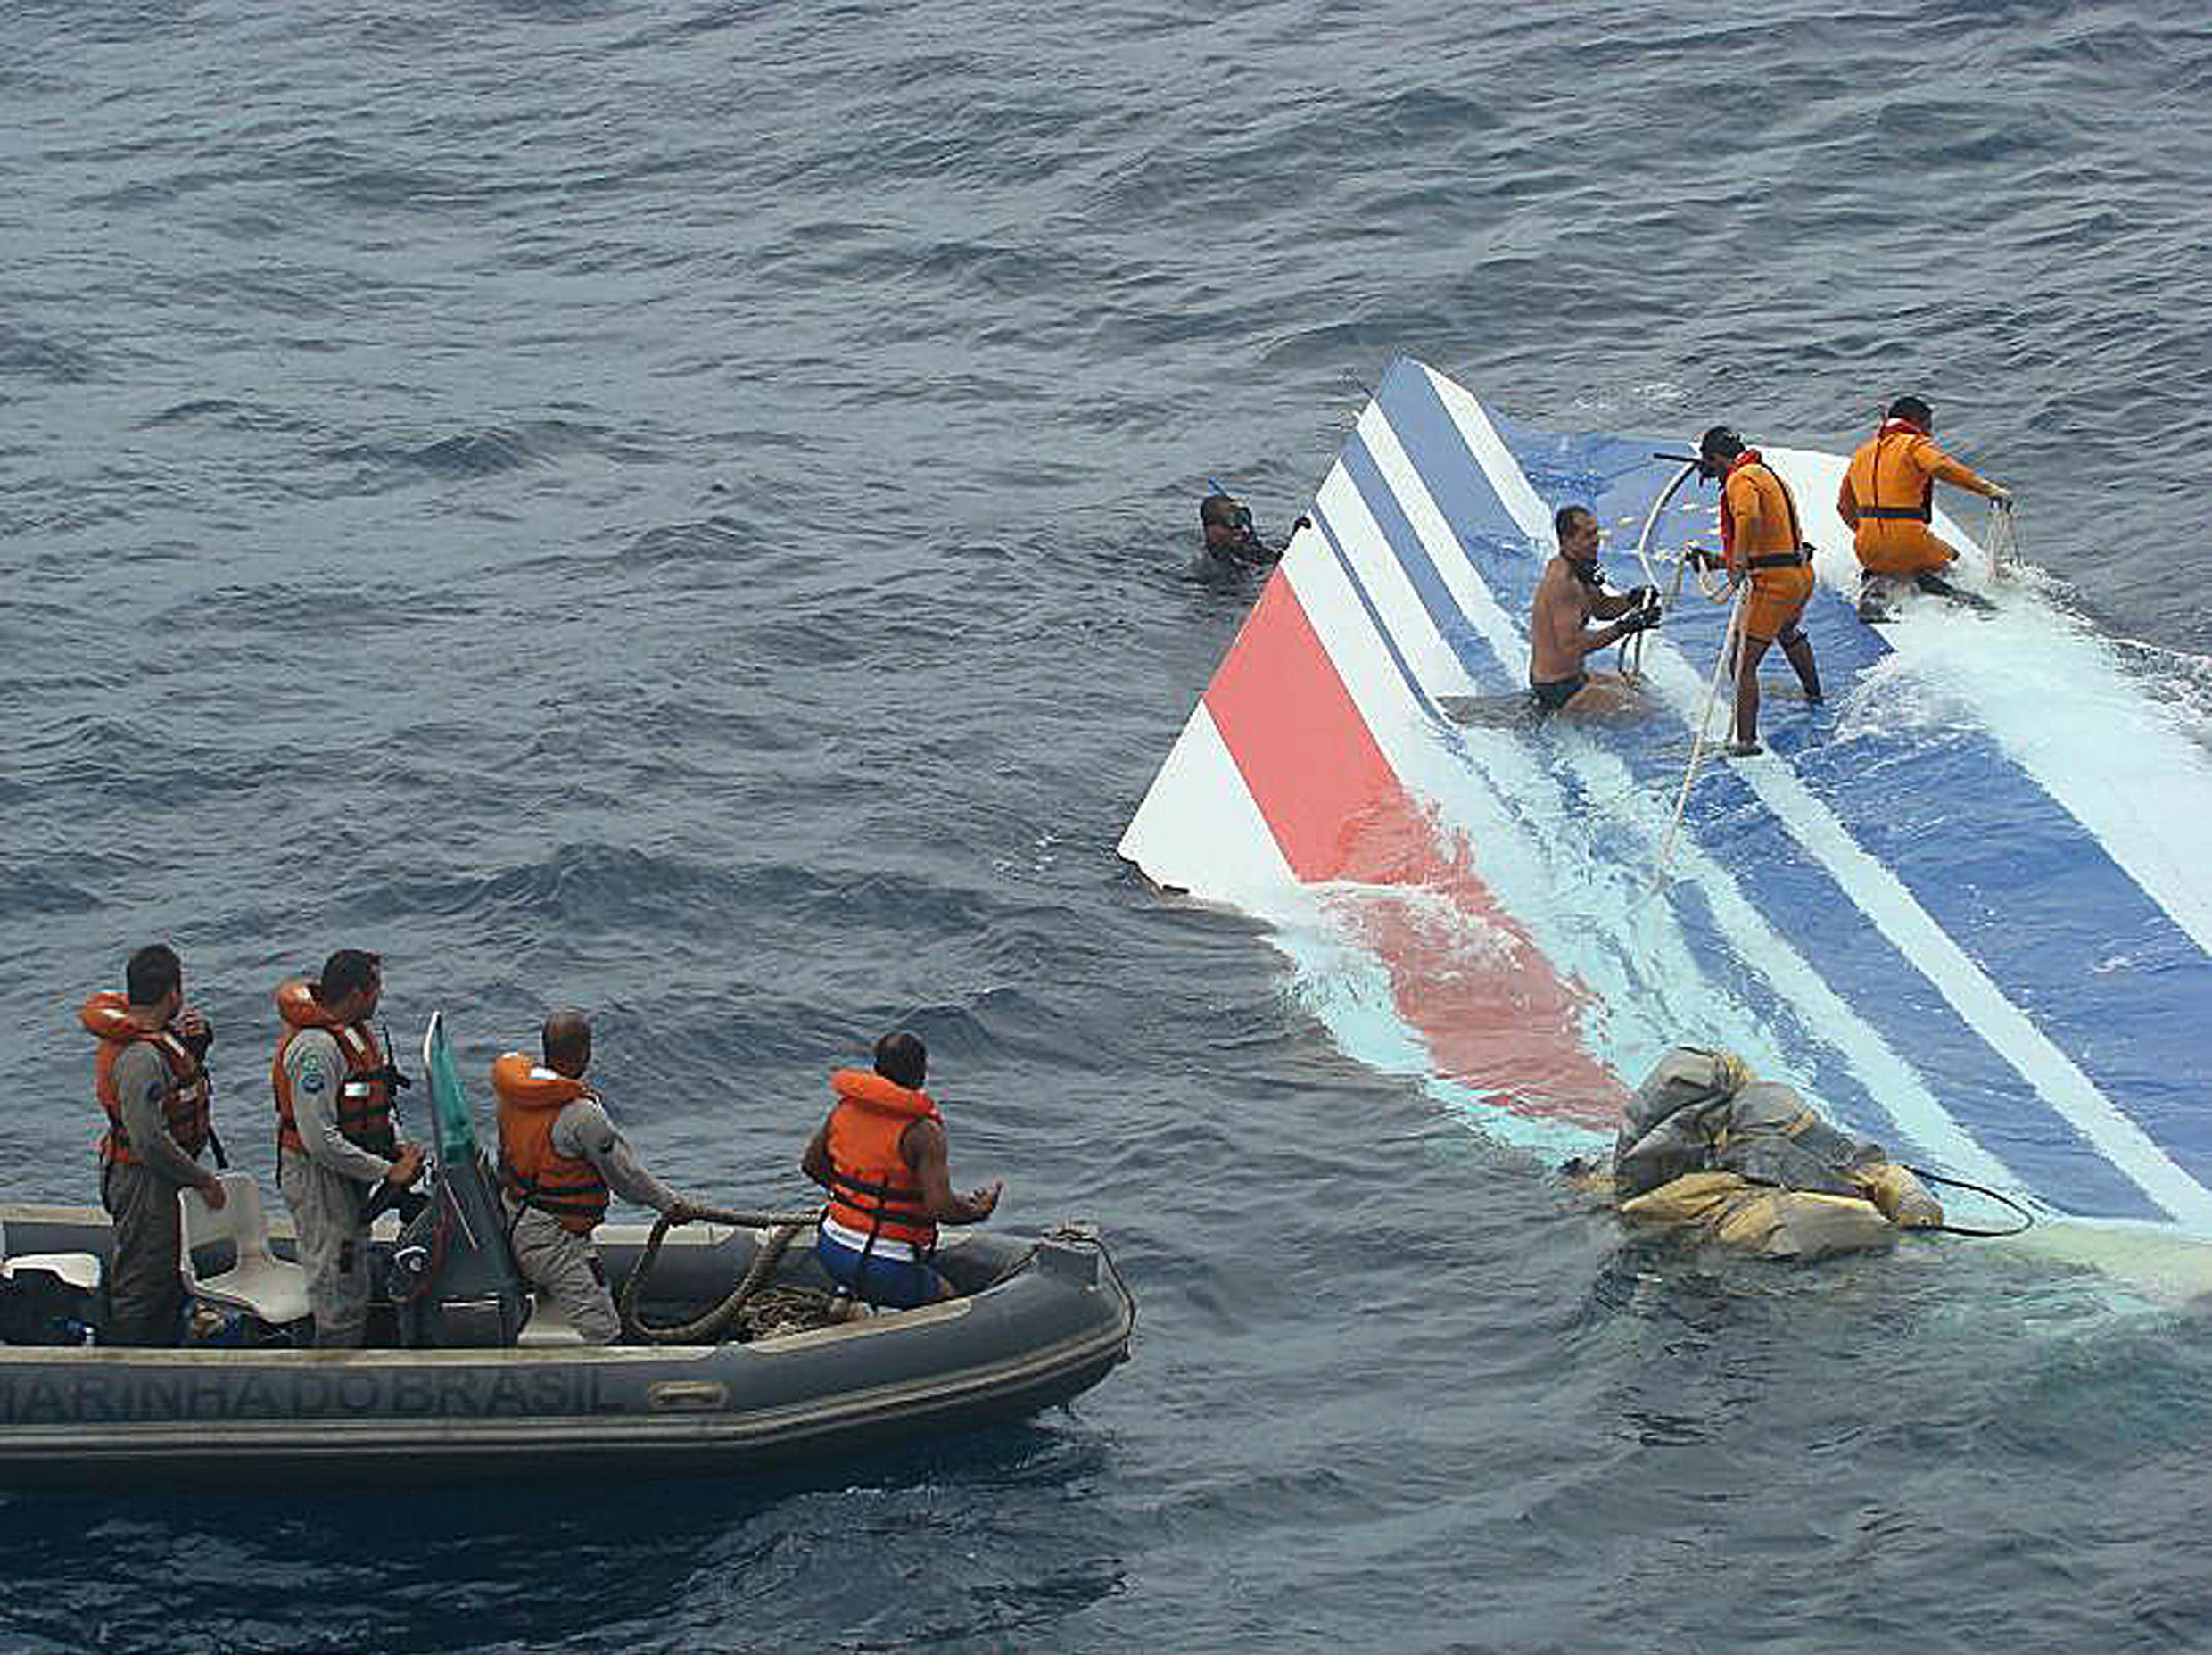 Flight AF447 plunged into the Atlantic Ocean during a storm on June 1, 2009, in the deadliest crash in Air France's history